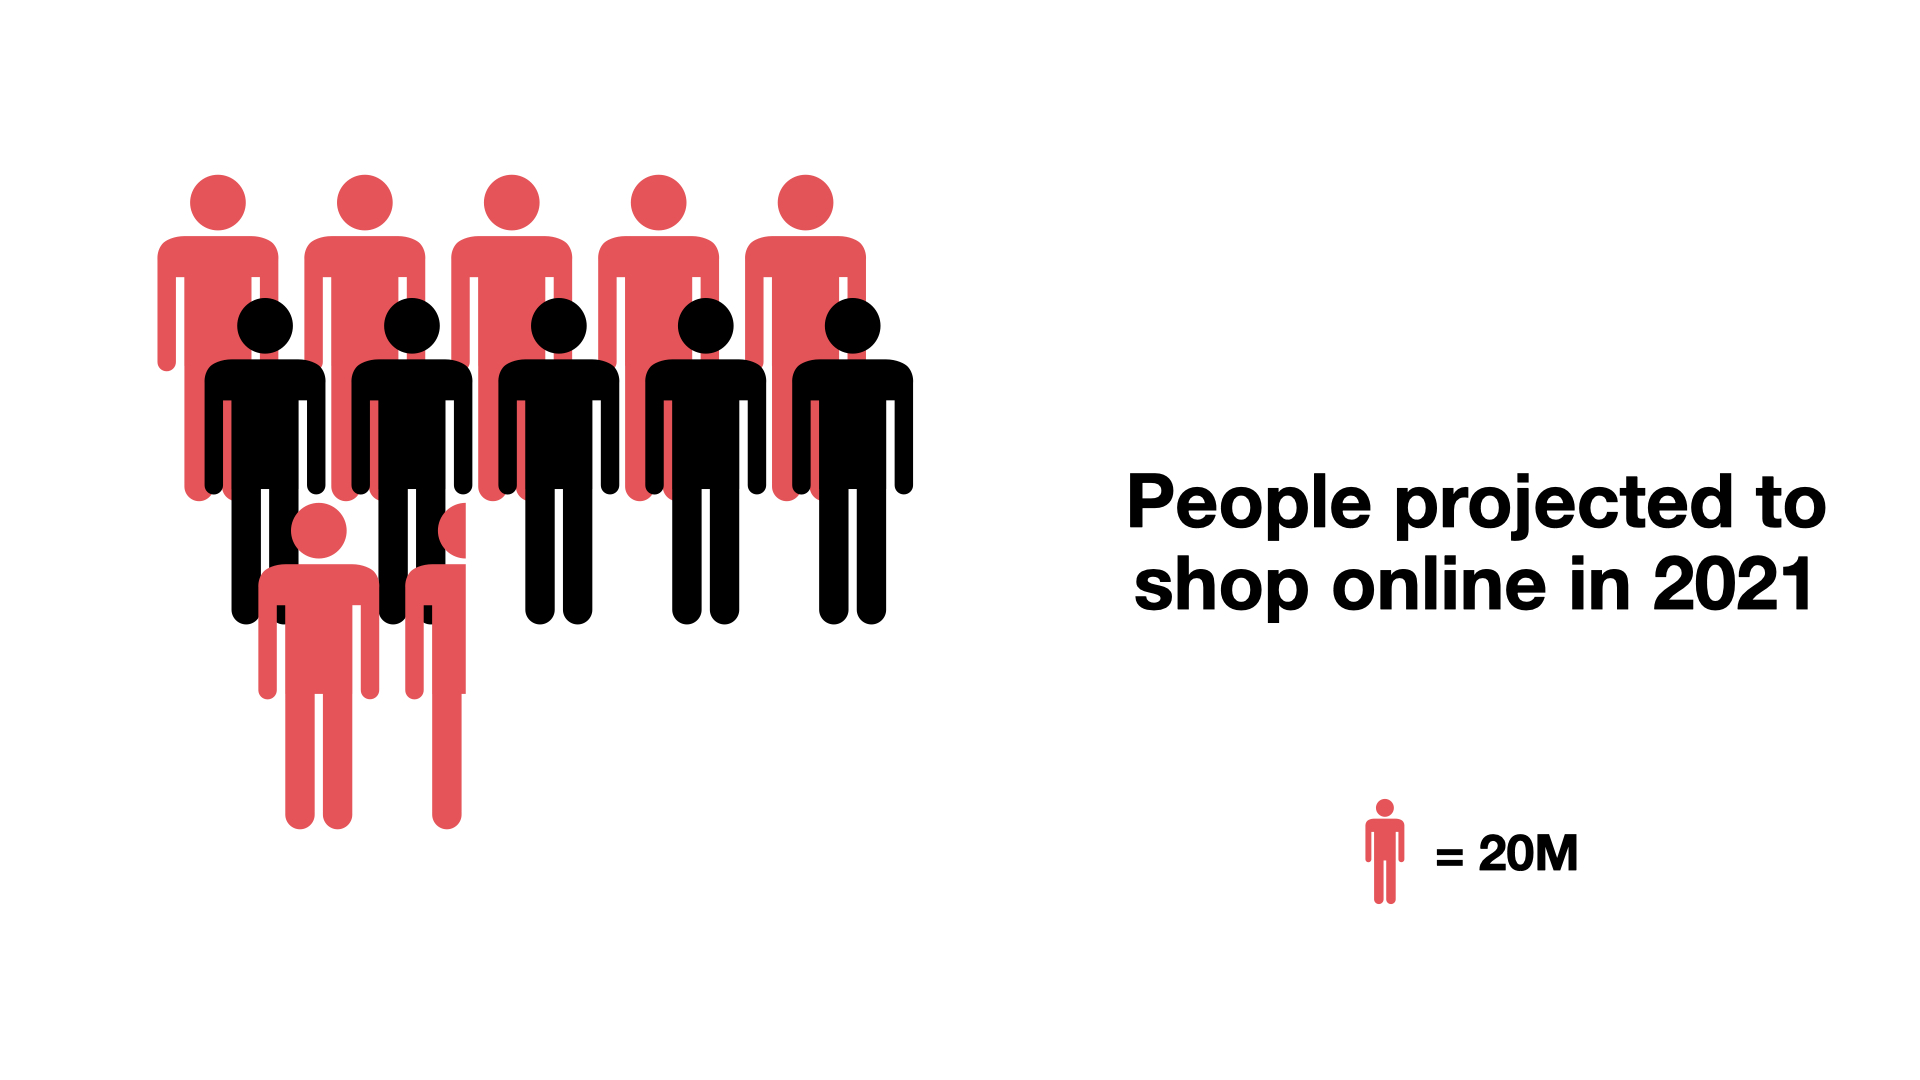 G & Co. is a DTC digital agency: 230 million people in the U.S. are projected to shop online in 2021